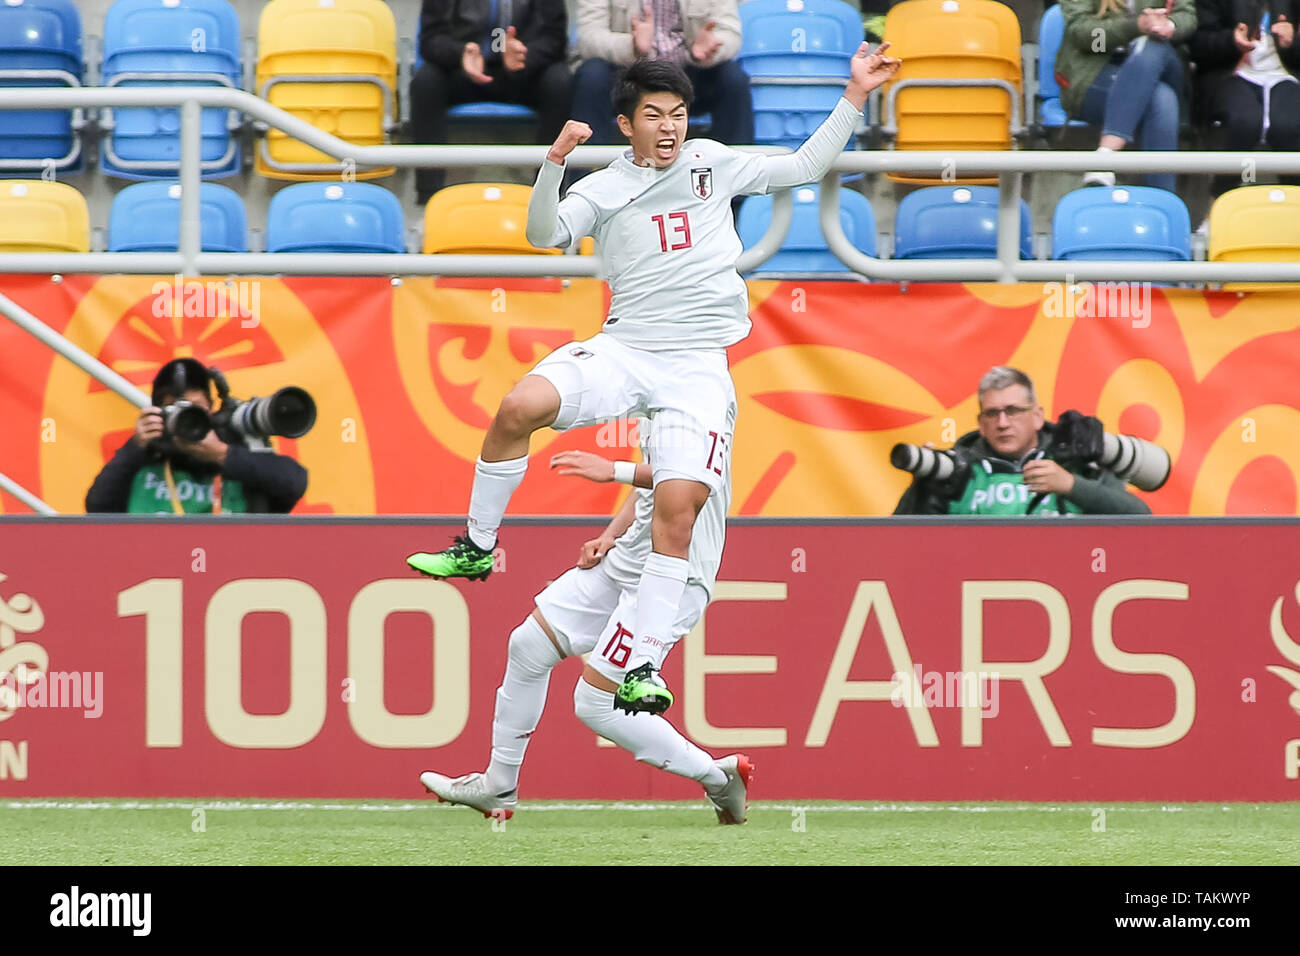 Gdynia Stadium, Gdynia, Poland - 26th May, 2019: Taisei Miyashiro from Japan seen celebrating after scoring a goal during FIFA U-20 World Cup match between Mexico and Japan (GROUP B) in Gdynia. (Final score; Mexico 0:3 Japan) - Stock Image